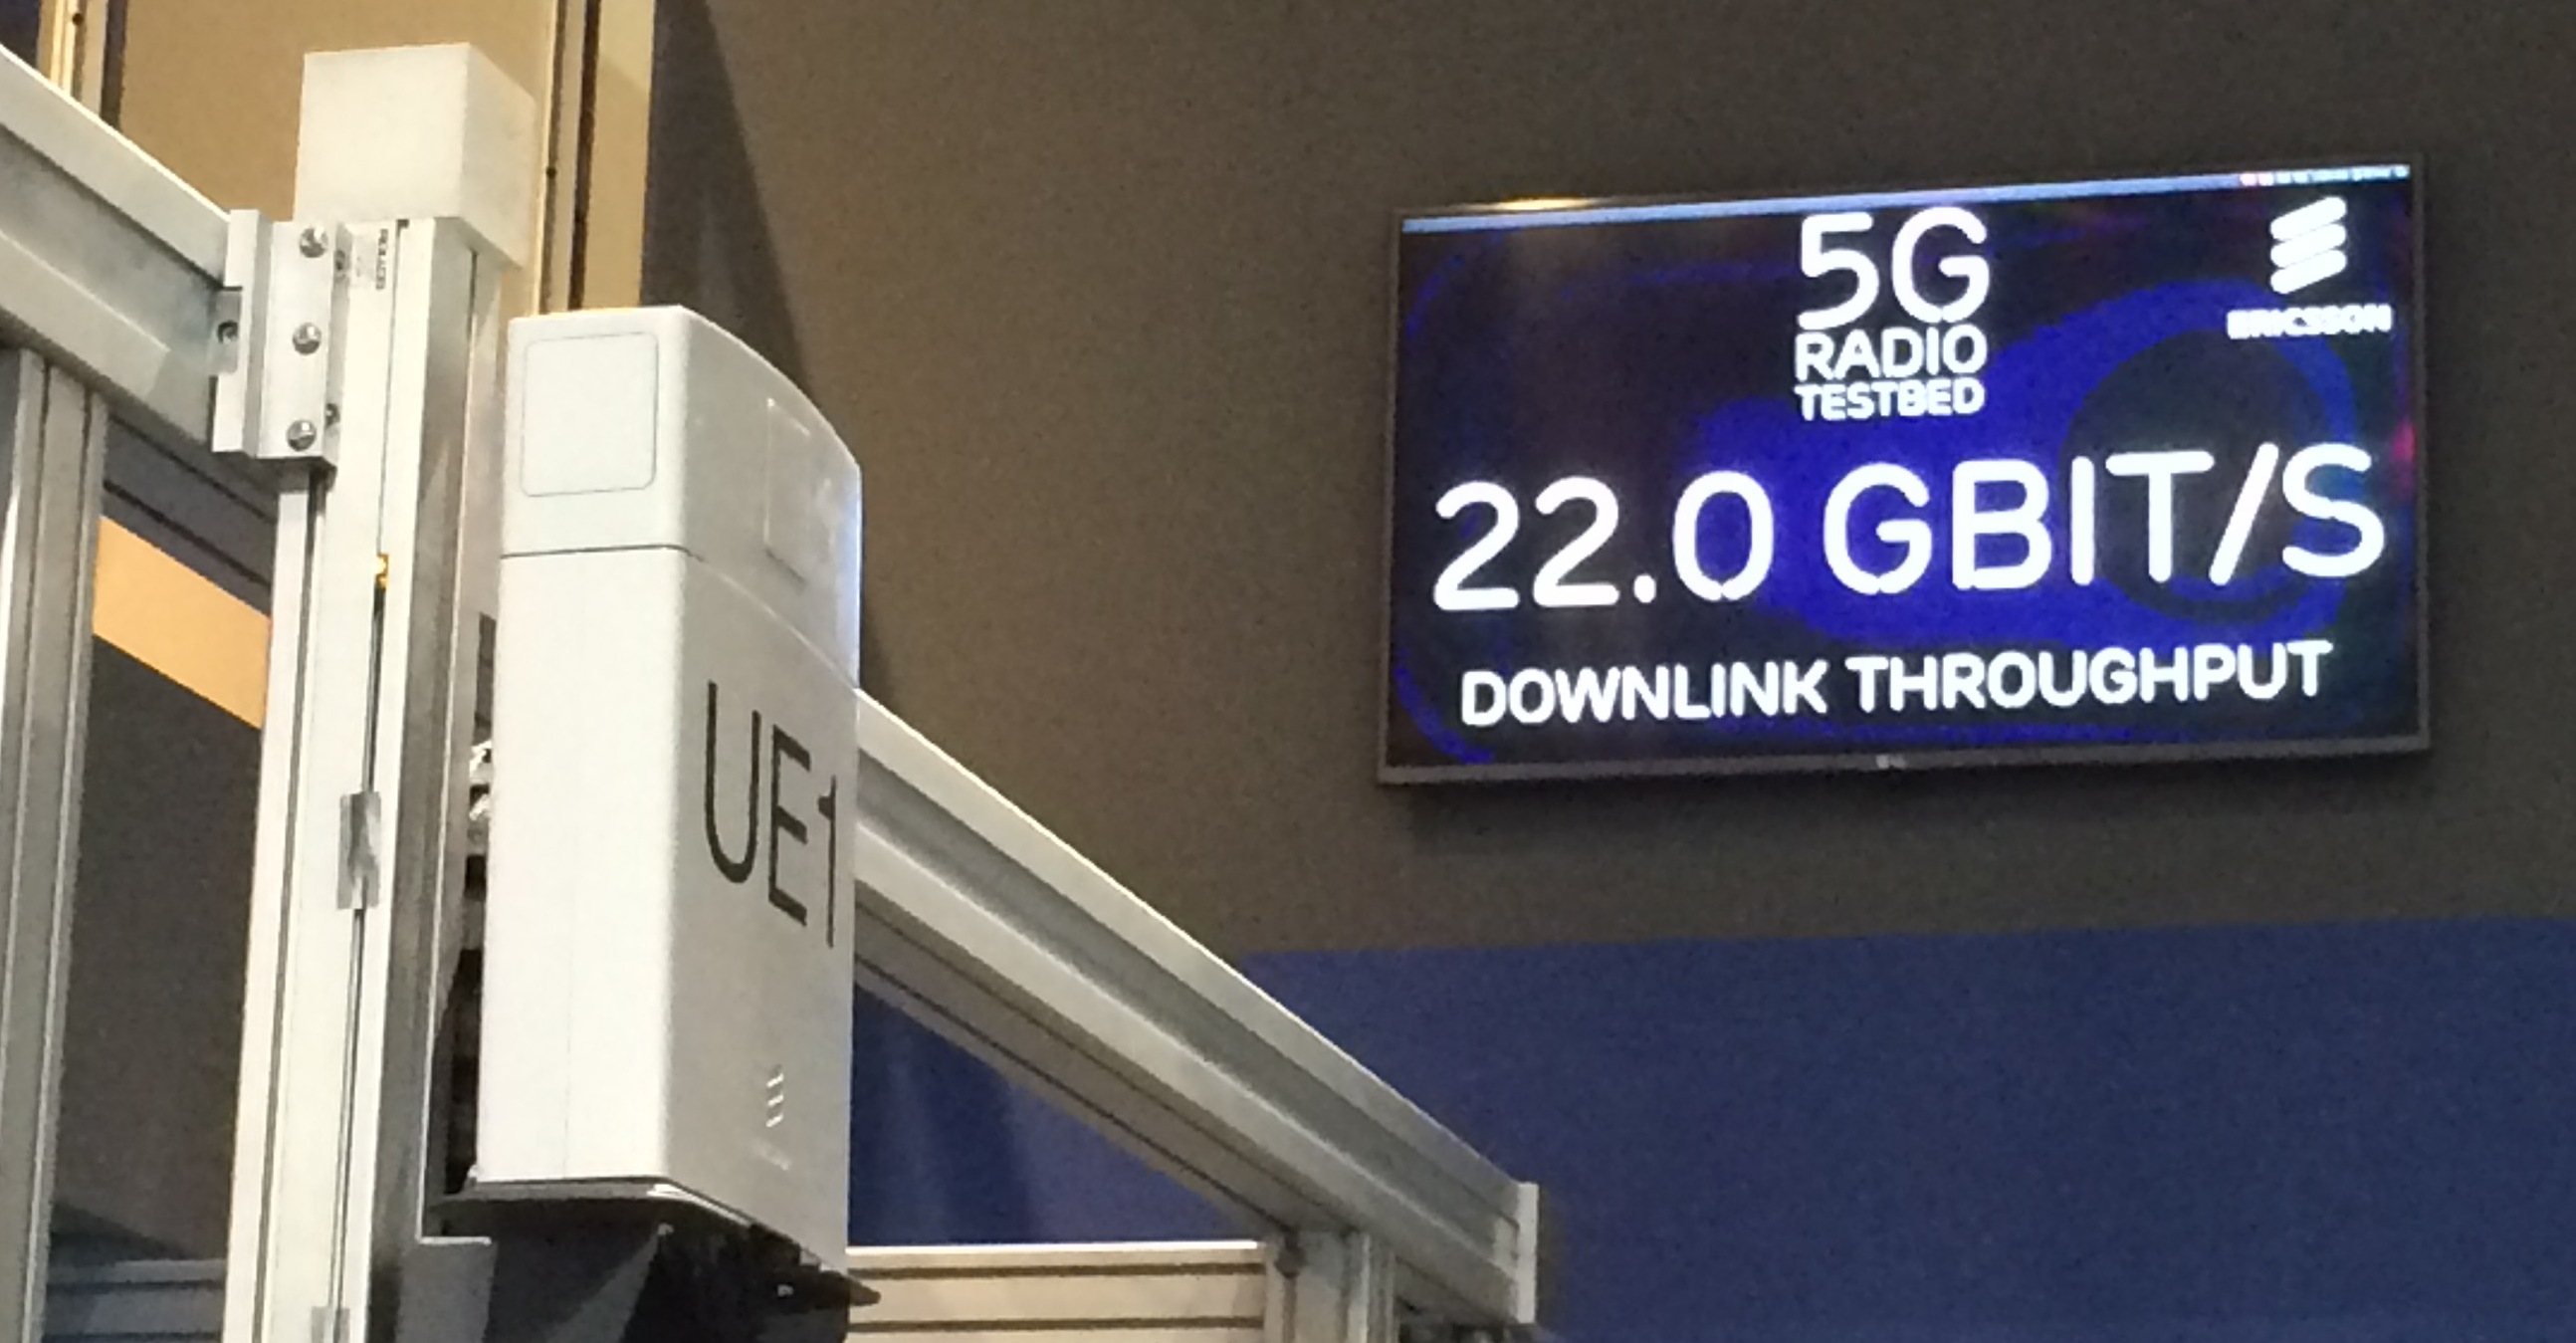 Ericsson's 15 GHz 5G test bed demonstrated data rates of up to 25 Gbps.